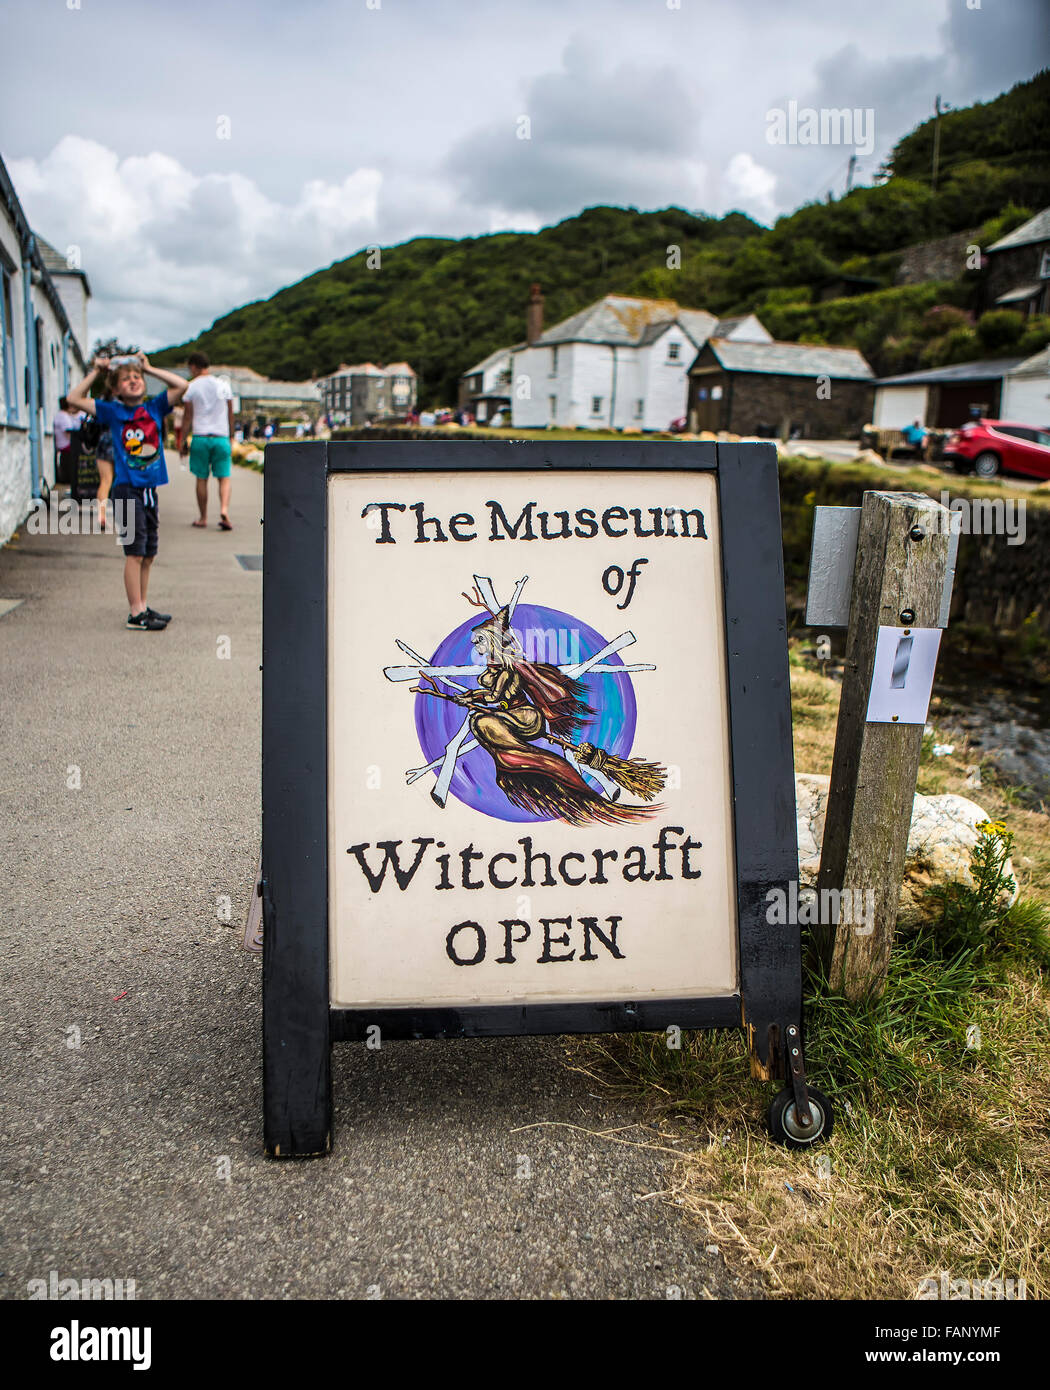 The Museum of Witchcraft in Boscastle, Cornwall - Stock Image